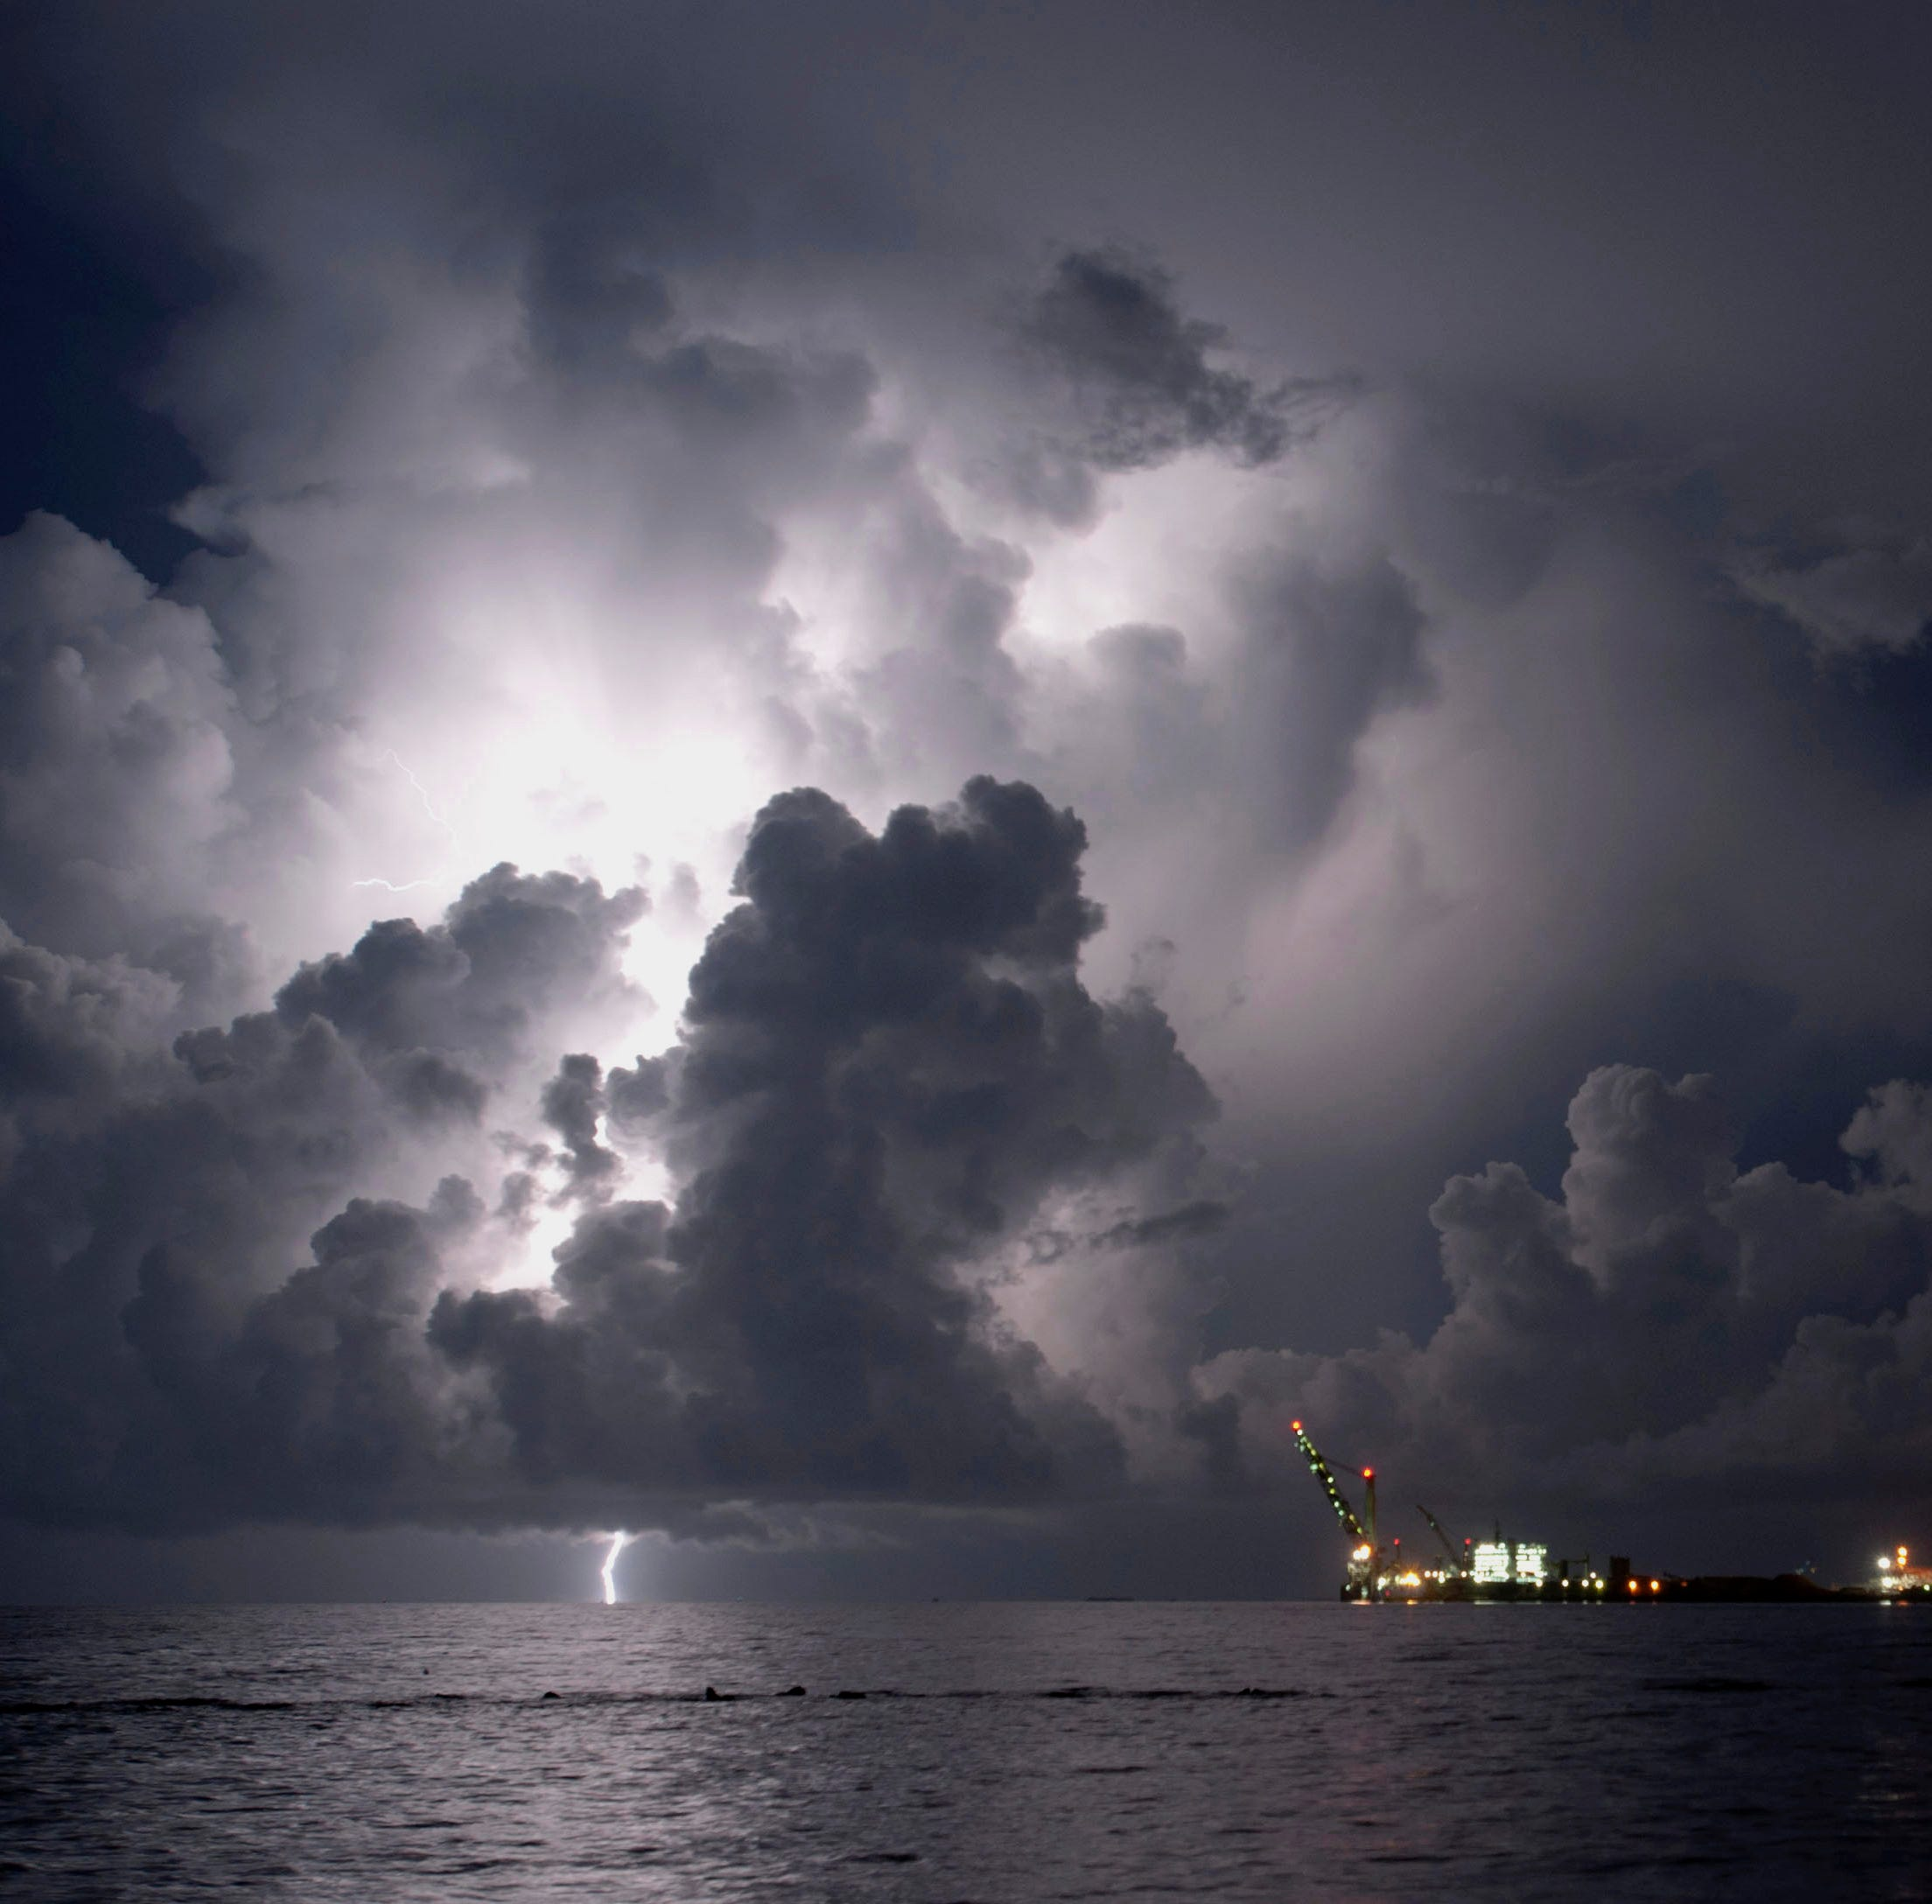 Severe thunderstorm warning issued for Escambia County